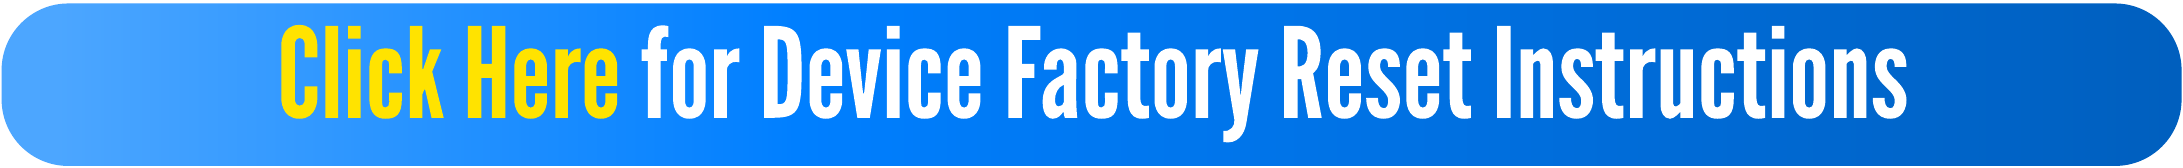 Click Here for Device Factory Reset Instructions